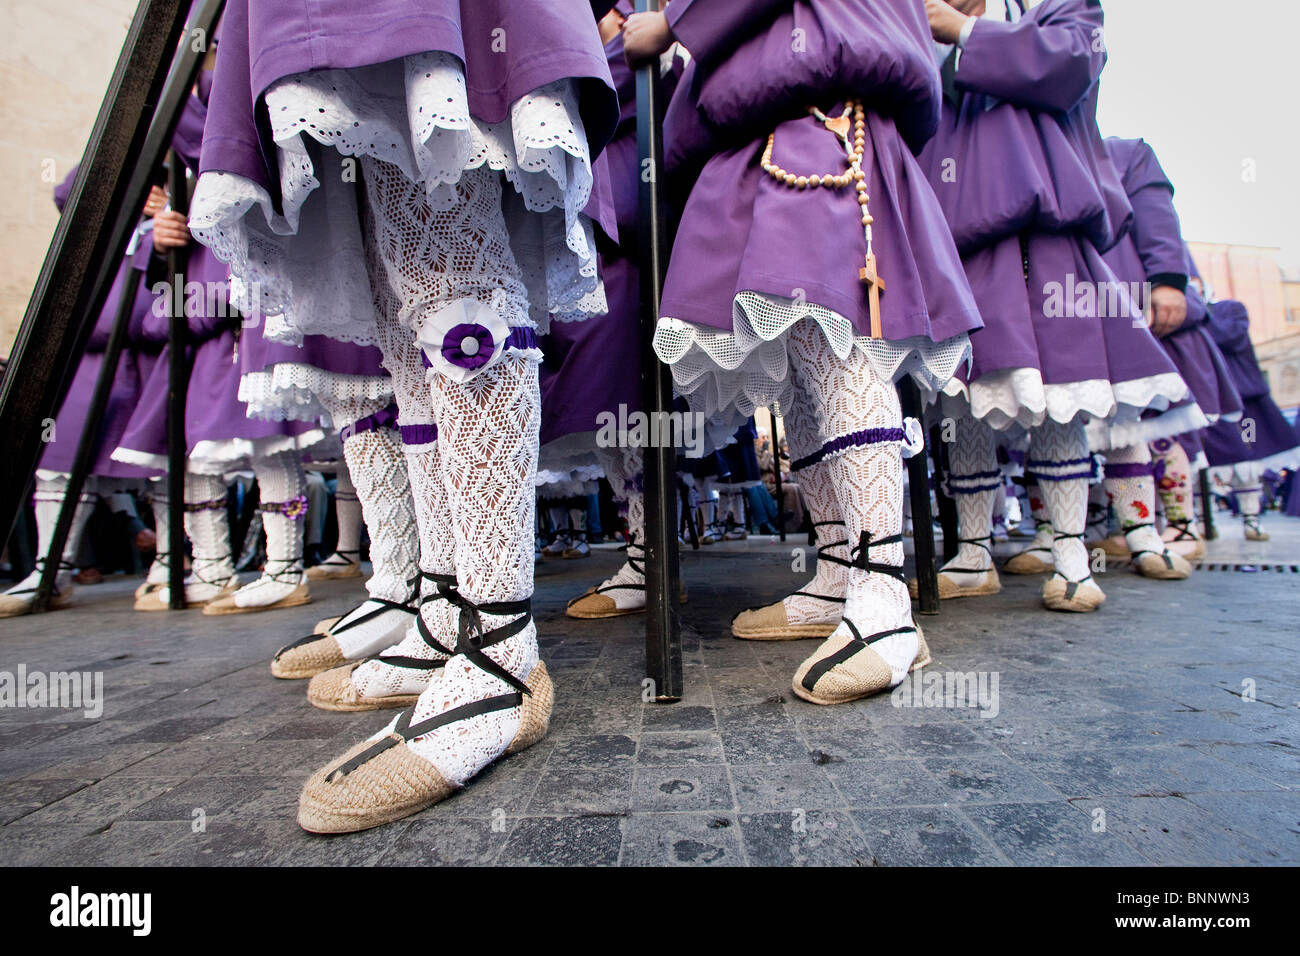 Andalusia Spain Good Friday religion procession custom traveling tourism vacation holidays - Stock Image